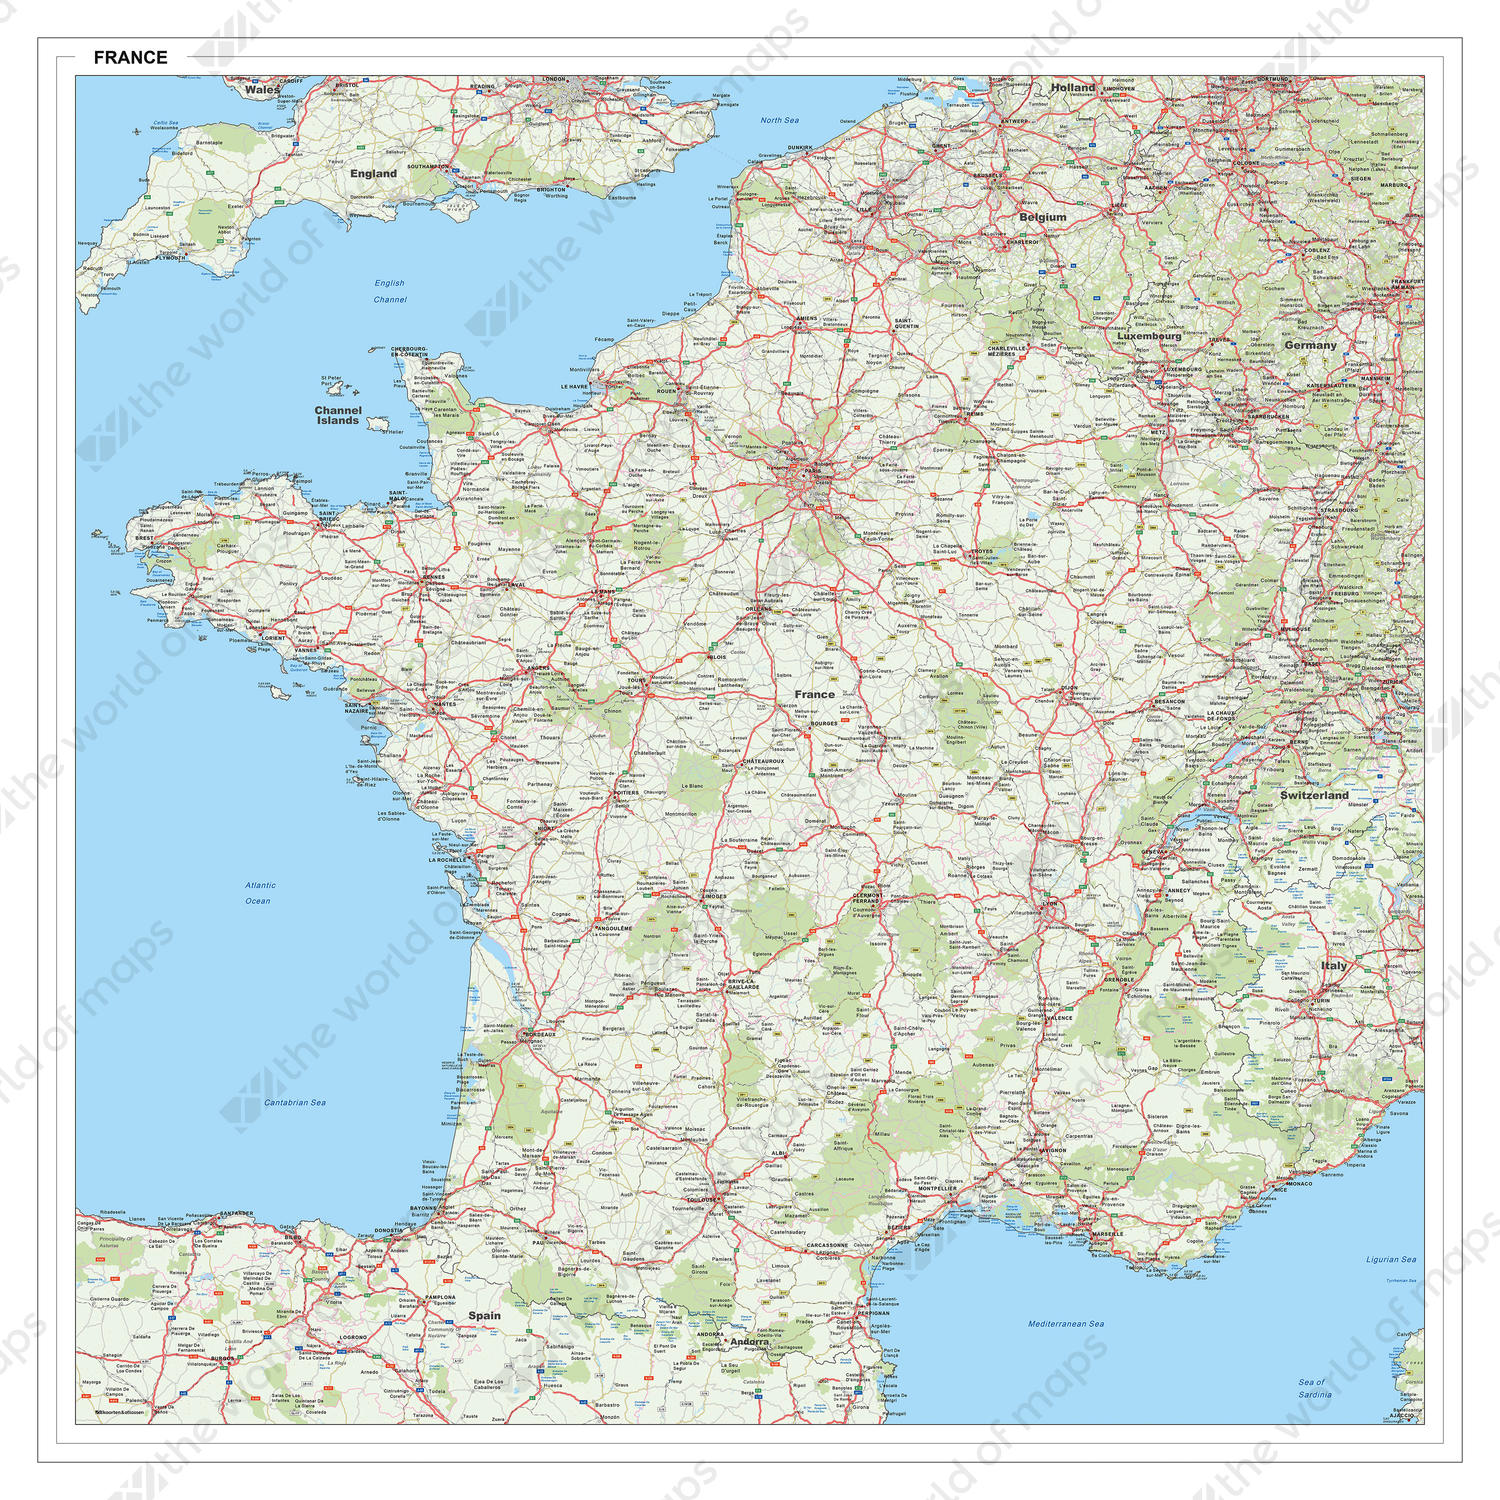 Map Of France In English.Digital Roadmap France 1415 The World Of Maps Com